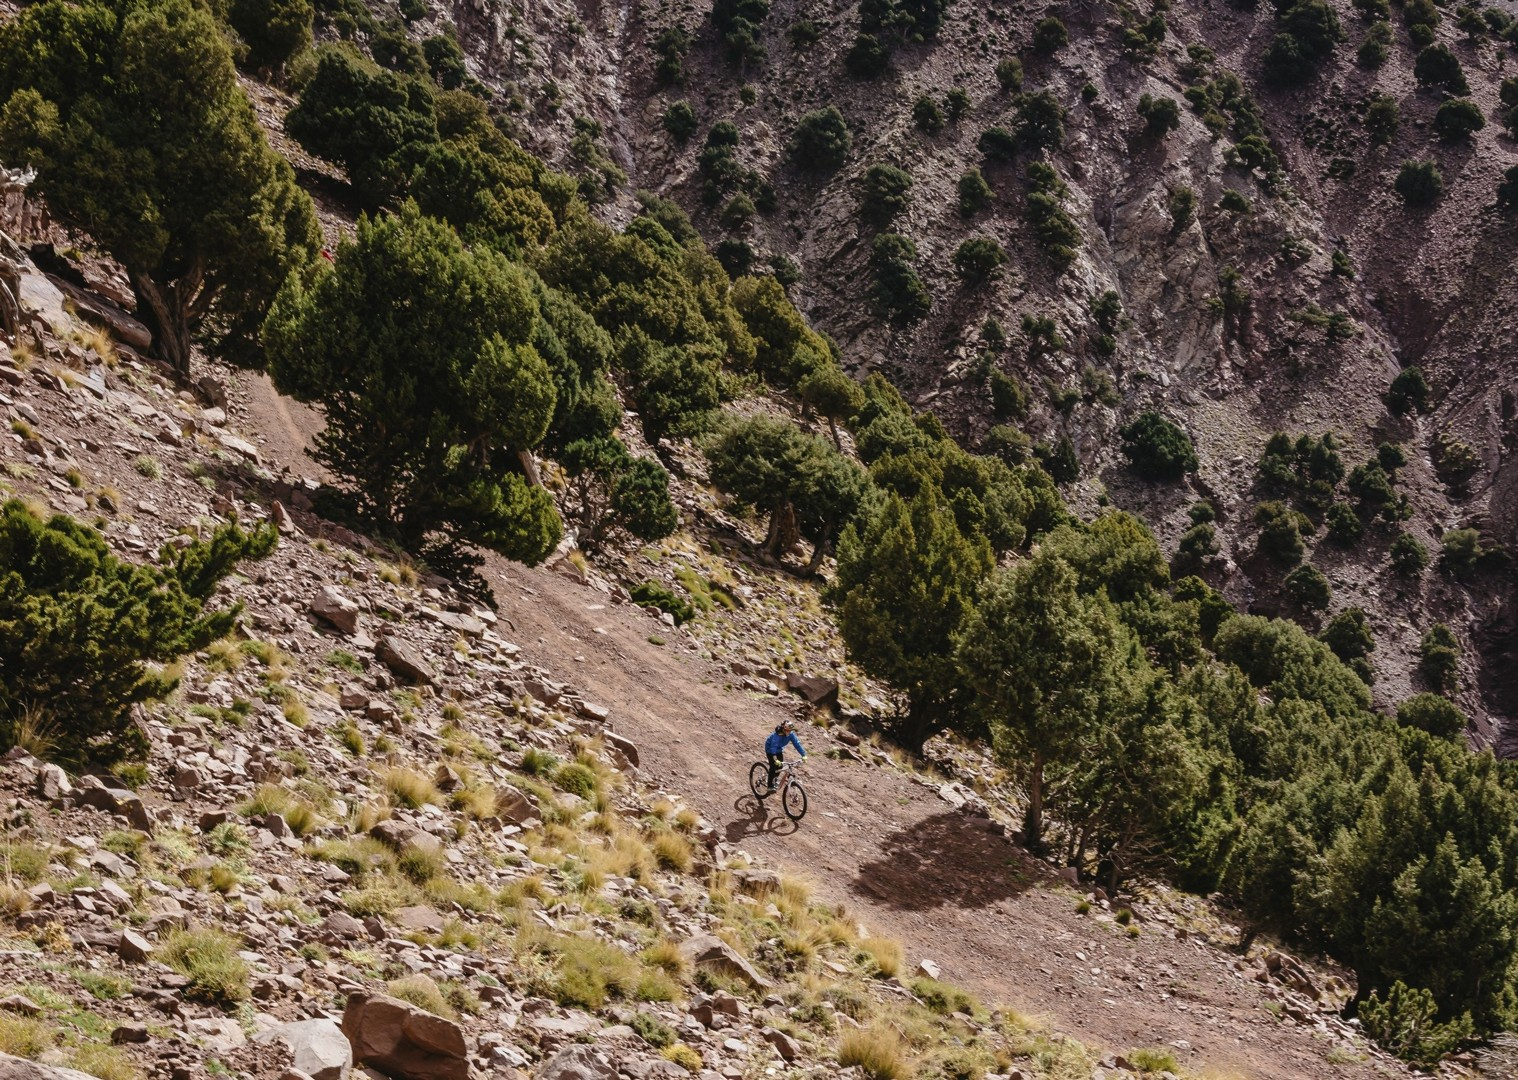 mountainbiking-morocco-atlas.jpg - Morocco - Atlas to Desert - Mountain Biking